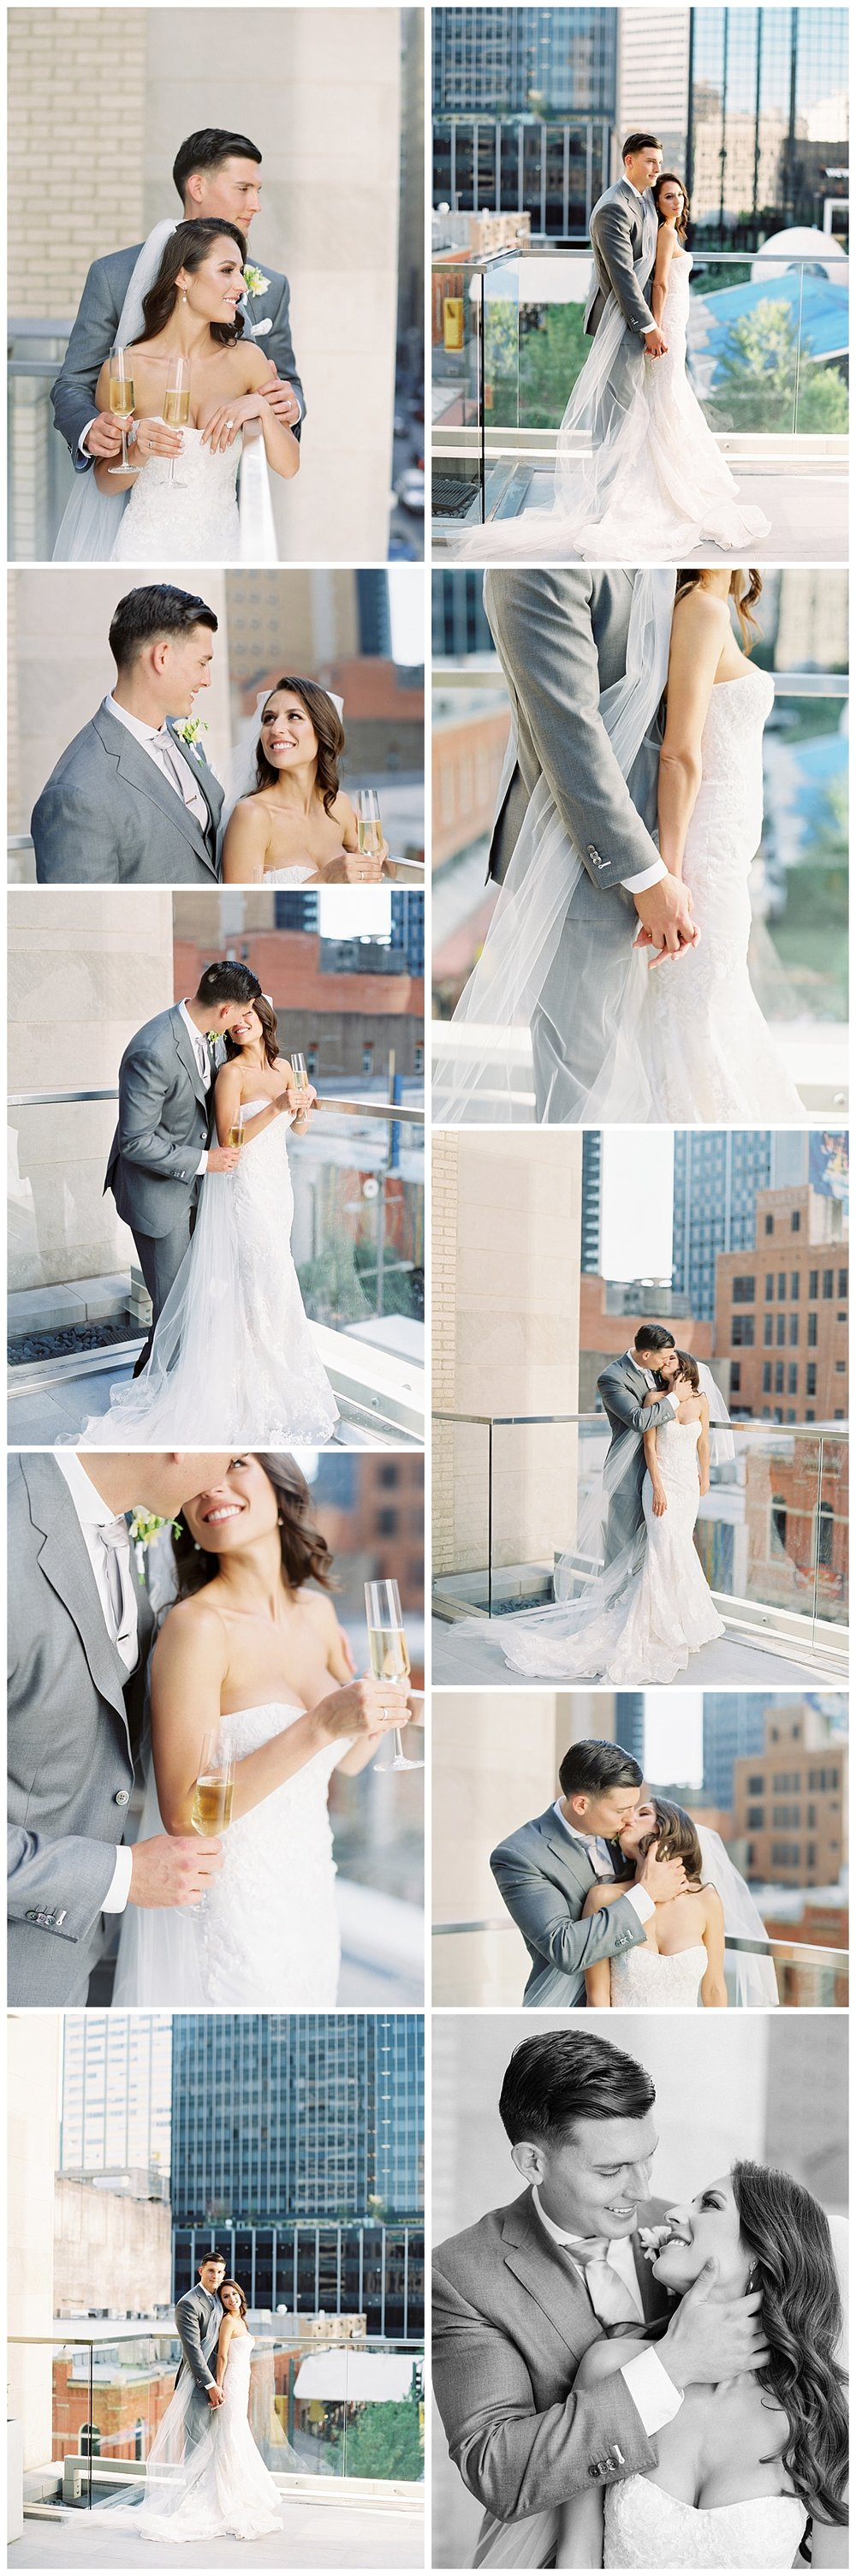 the-joule-dallas-wedding-ar-photography-6.jpg